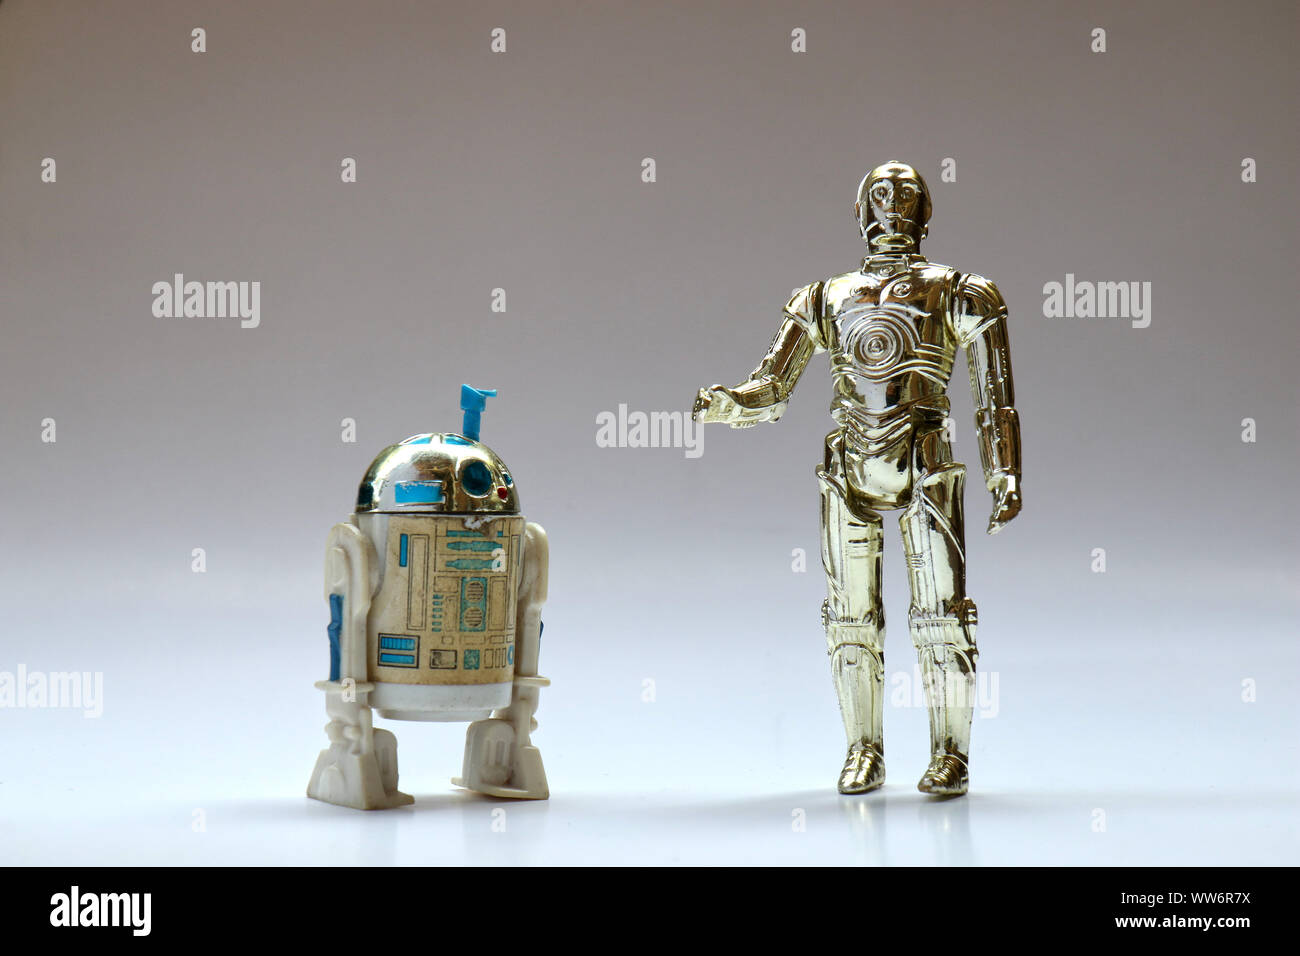 Kenner Star Wars Figures High Resolution Stock Photography And Images Alamy